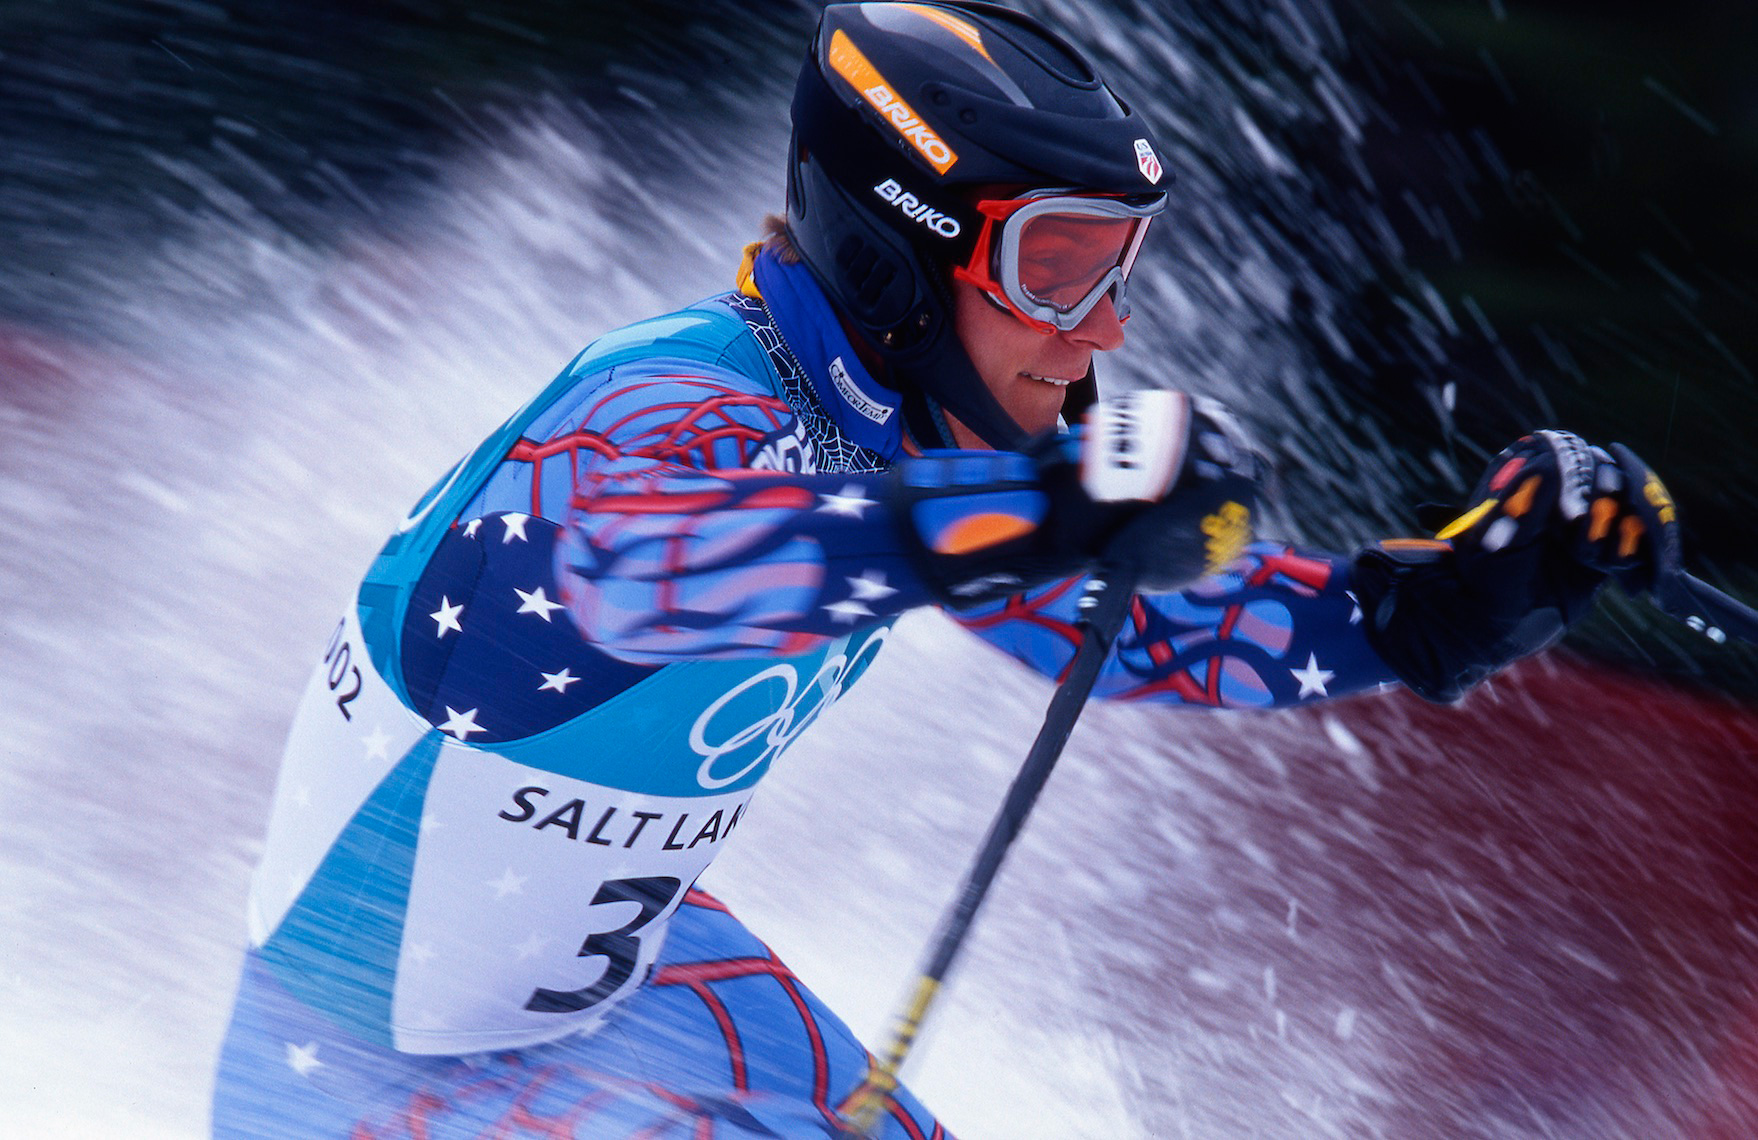 Slalom, Deer Valley, Salt Lake City Olympics